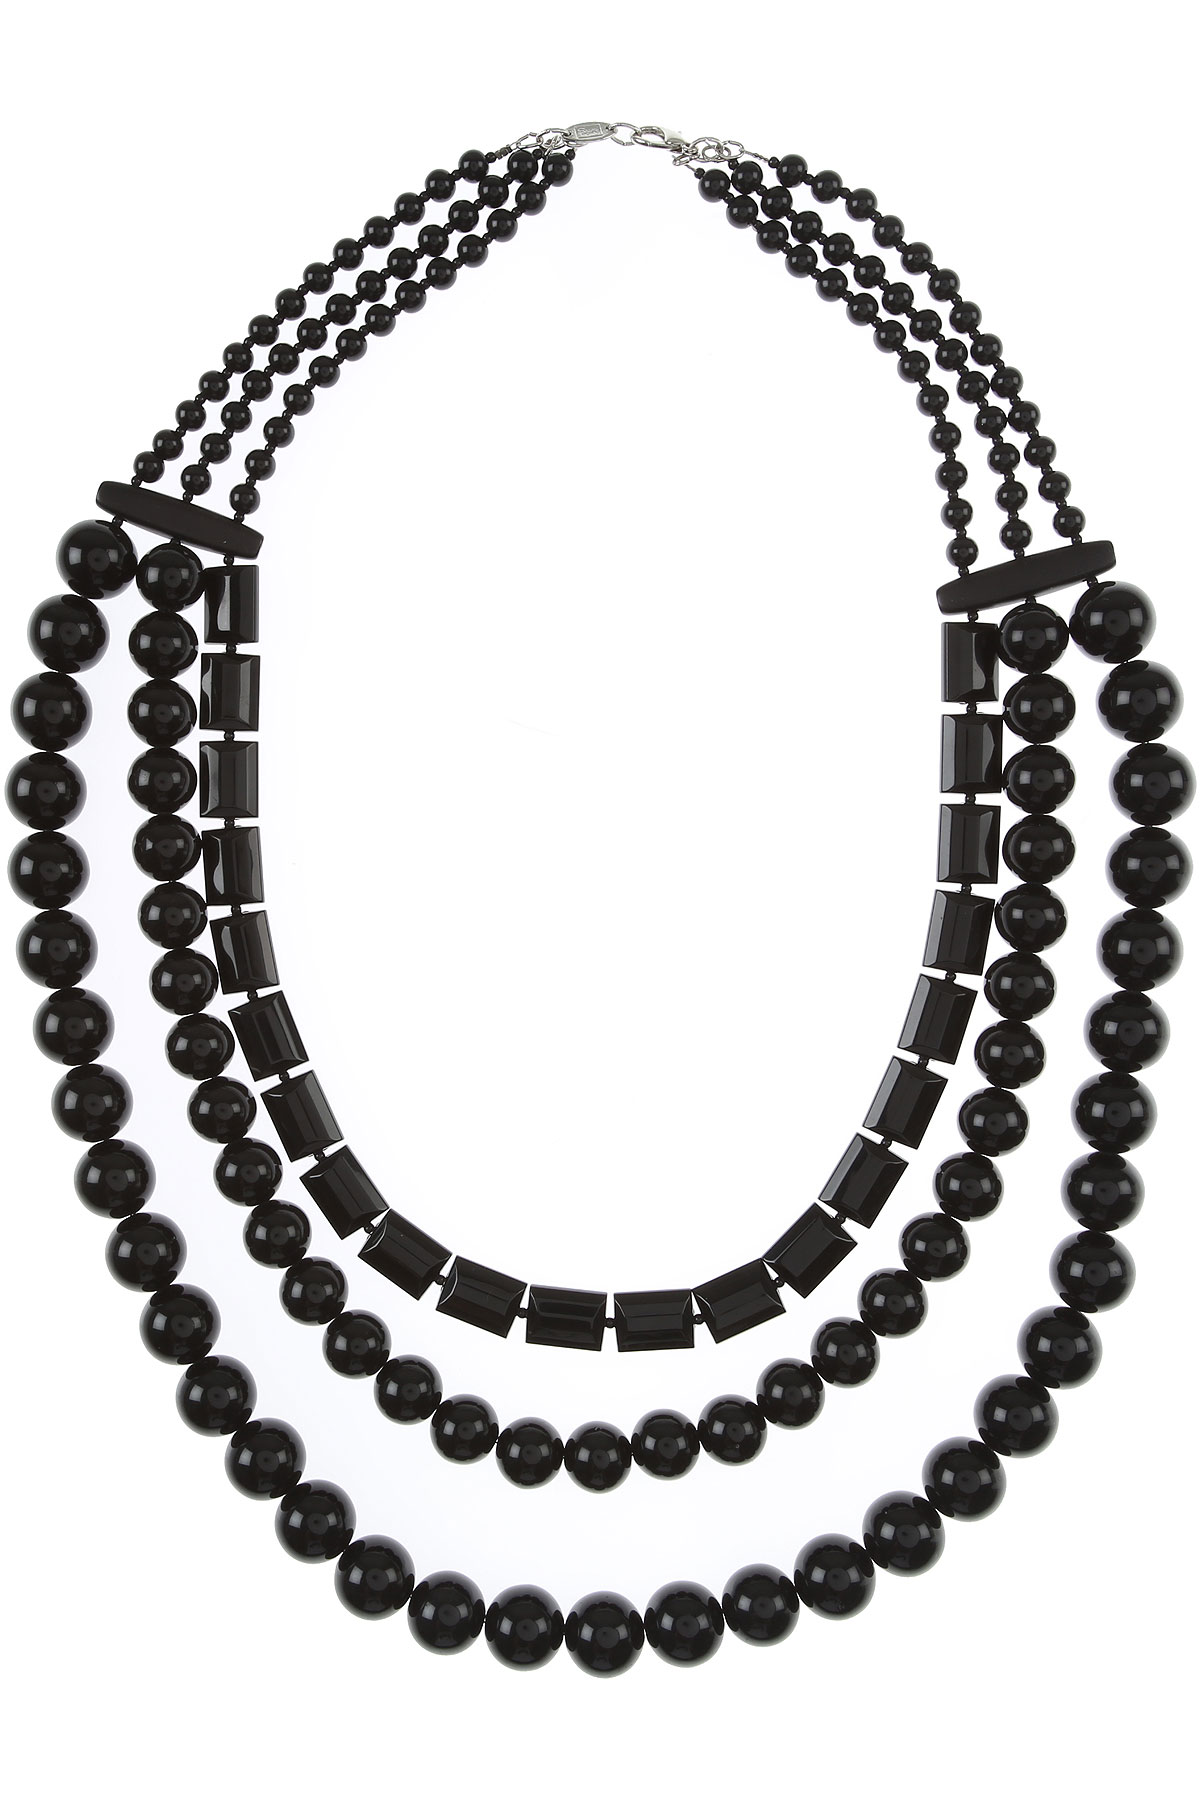 Sharra Pagano Necklaces On Sale, Black, Glass, 2019